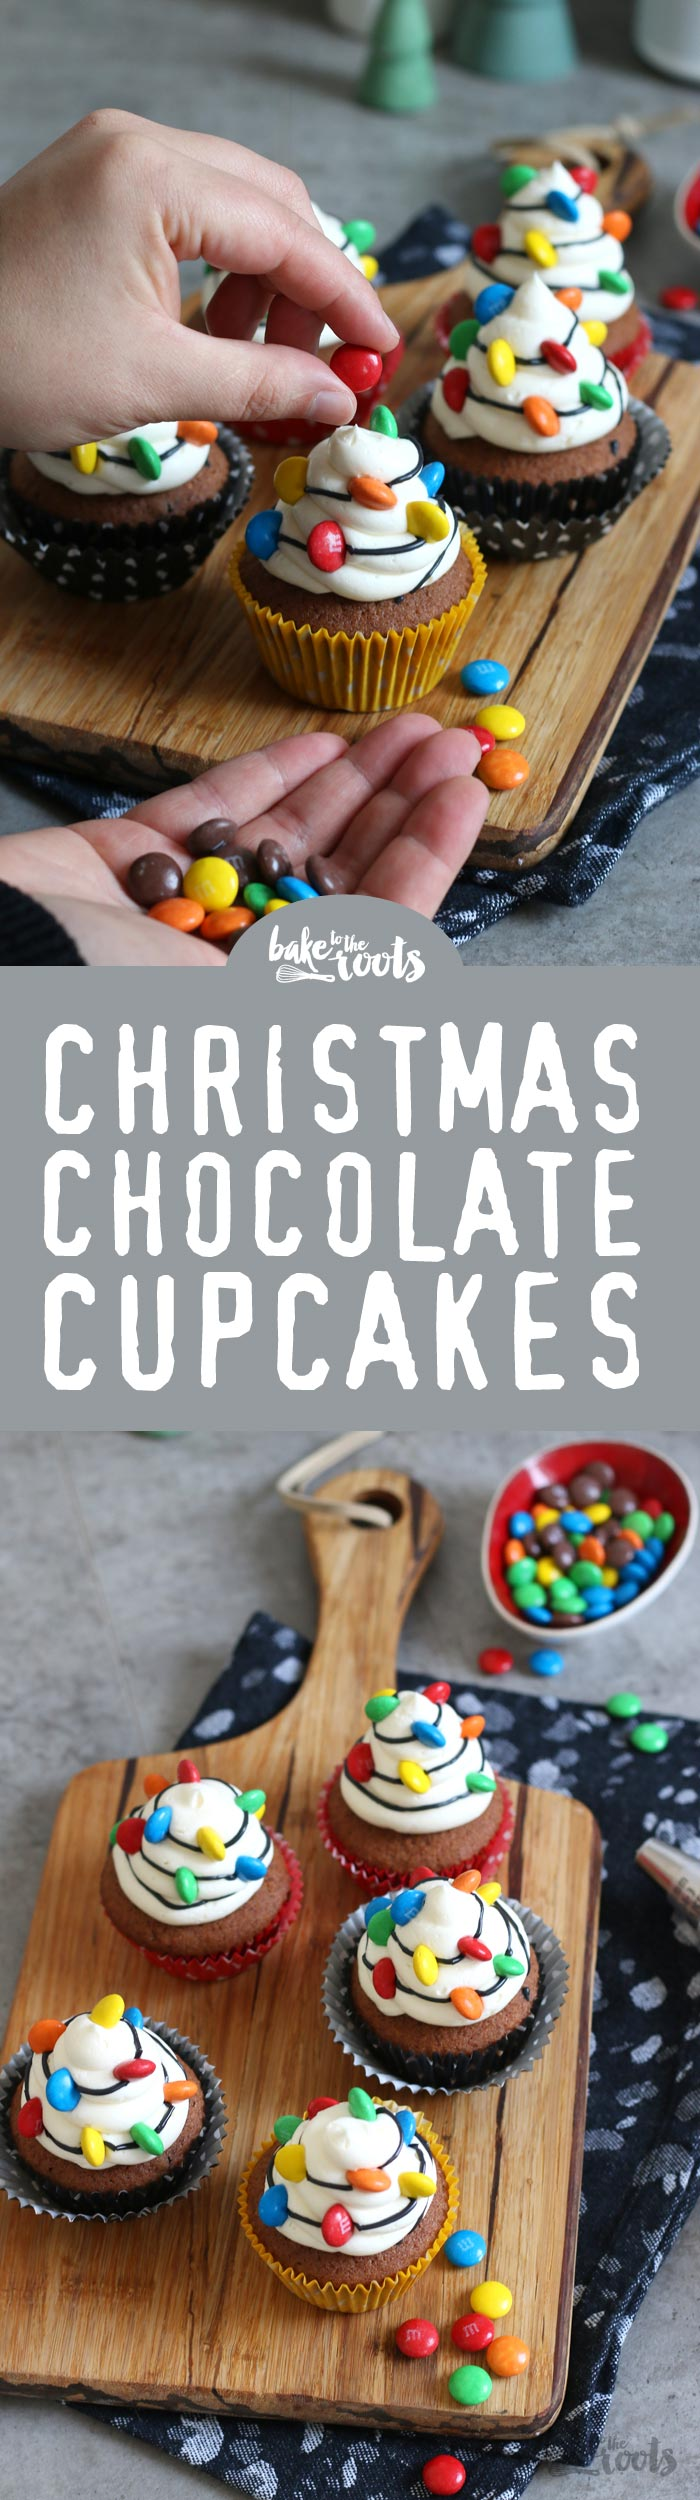 Christmas Chocolate Cupcakes with Lights | Bake to the roots